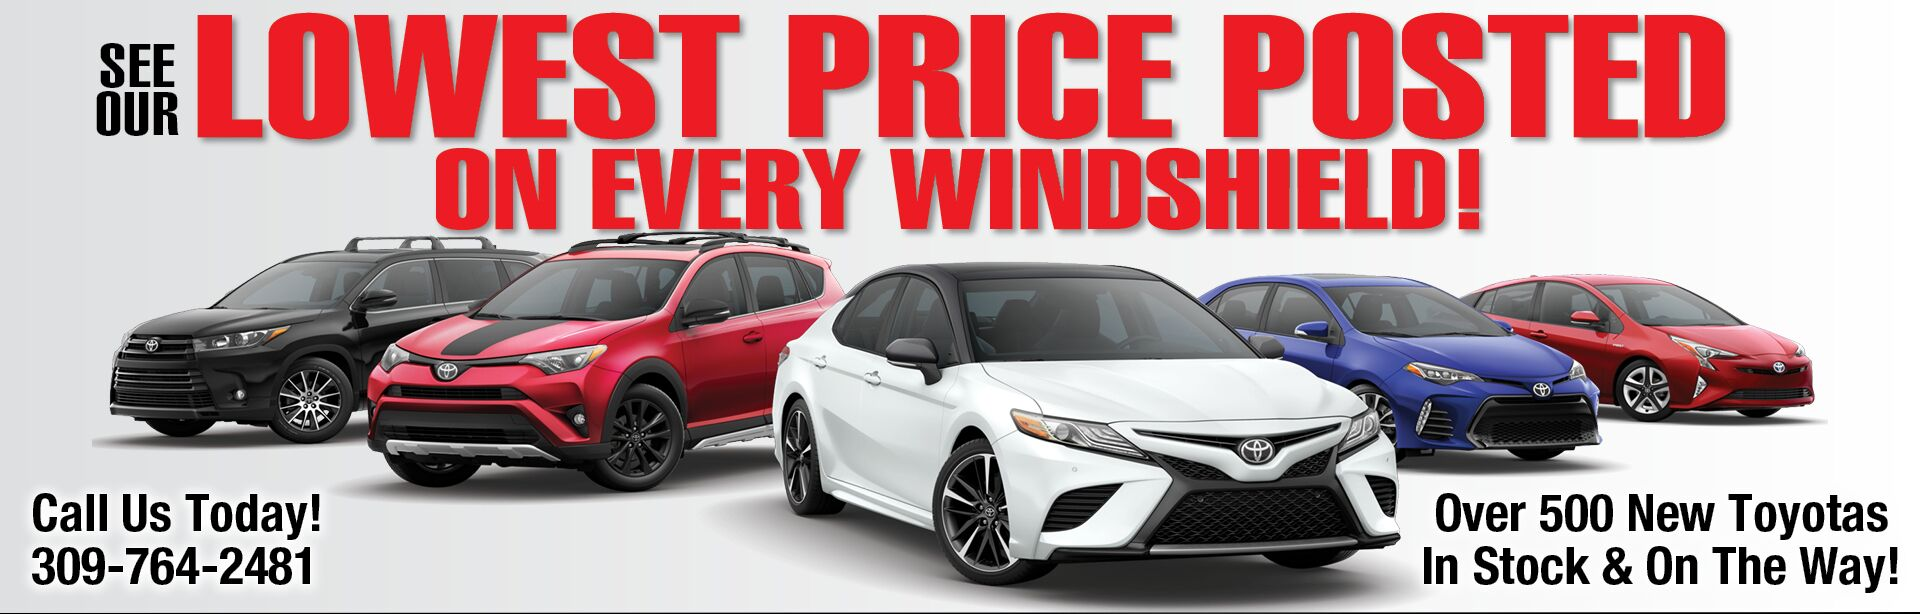 Lowest Price on Windshield